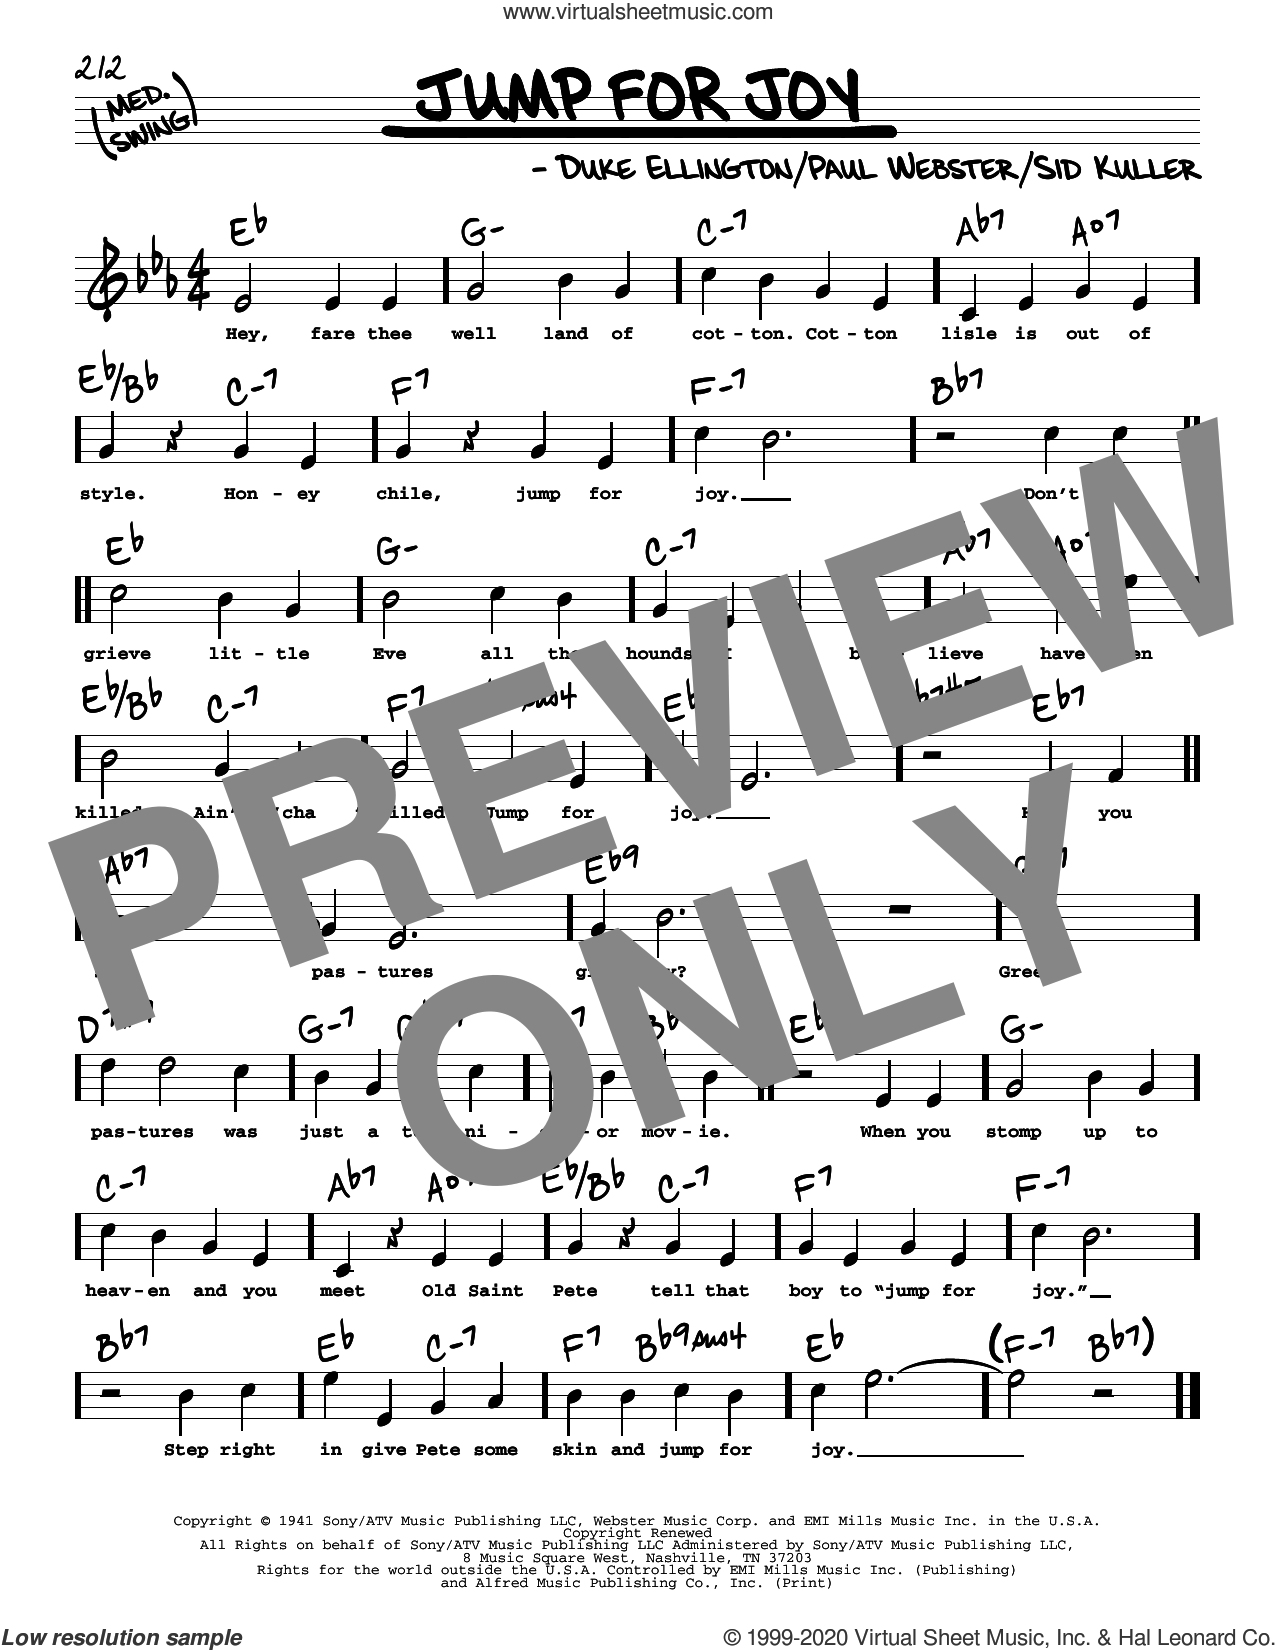 Jump For Joy (High Voice) sheet music for voice and other instruments (high voice) by Duke Ellington, Paul Francis Webster and Sid Kuller, intermediate skill level